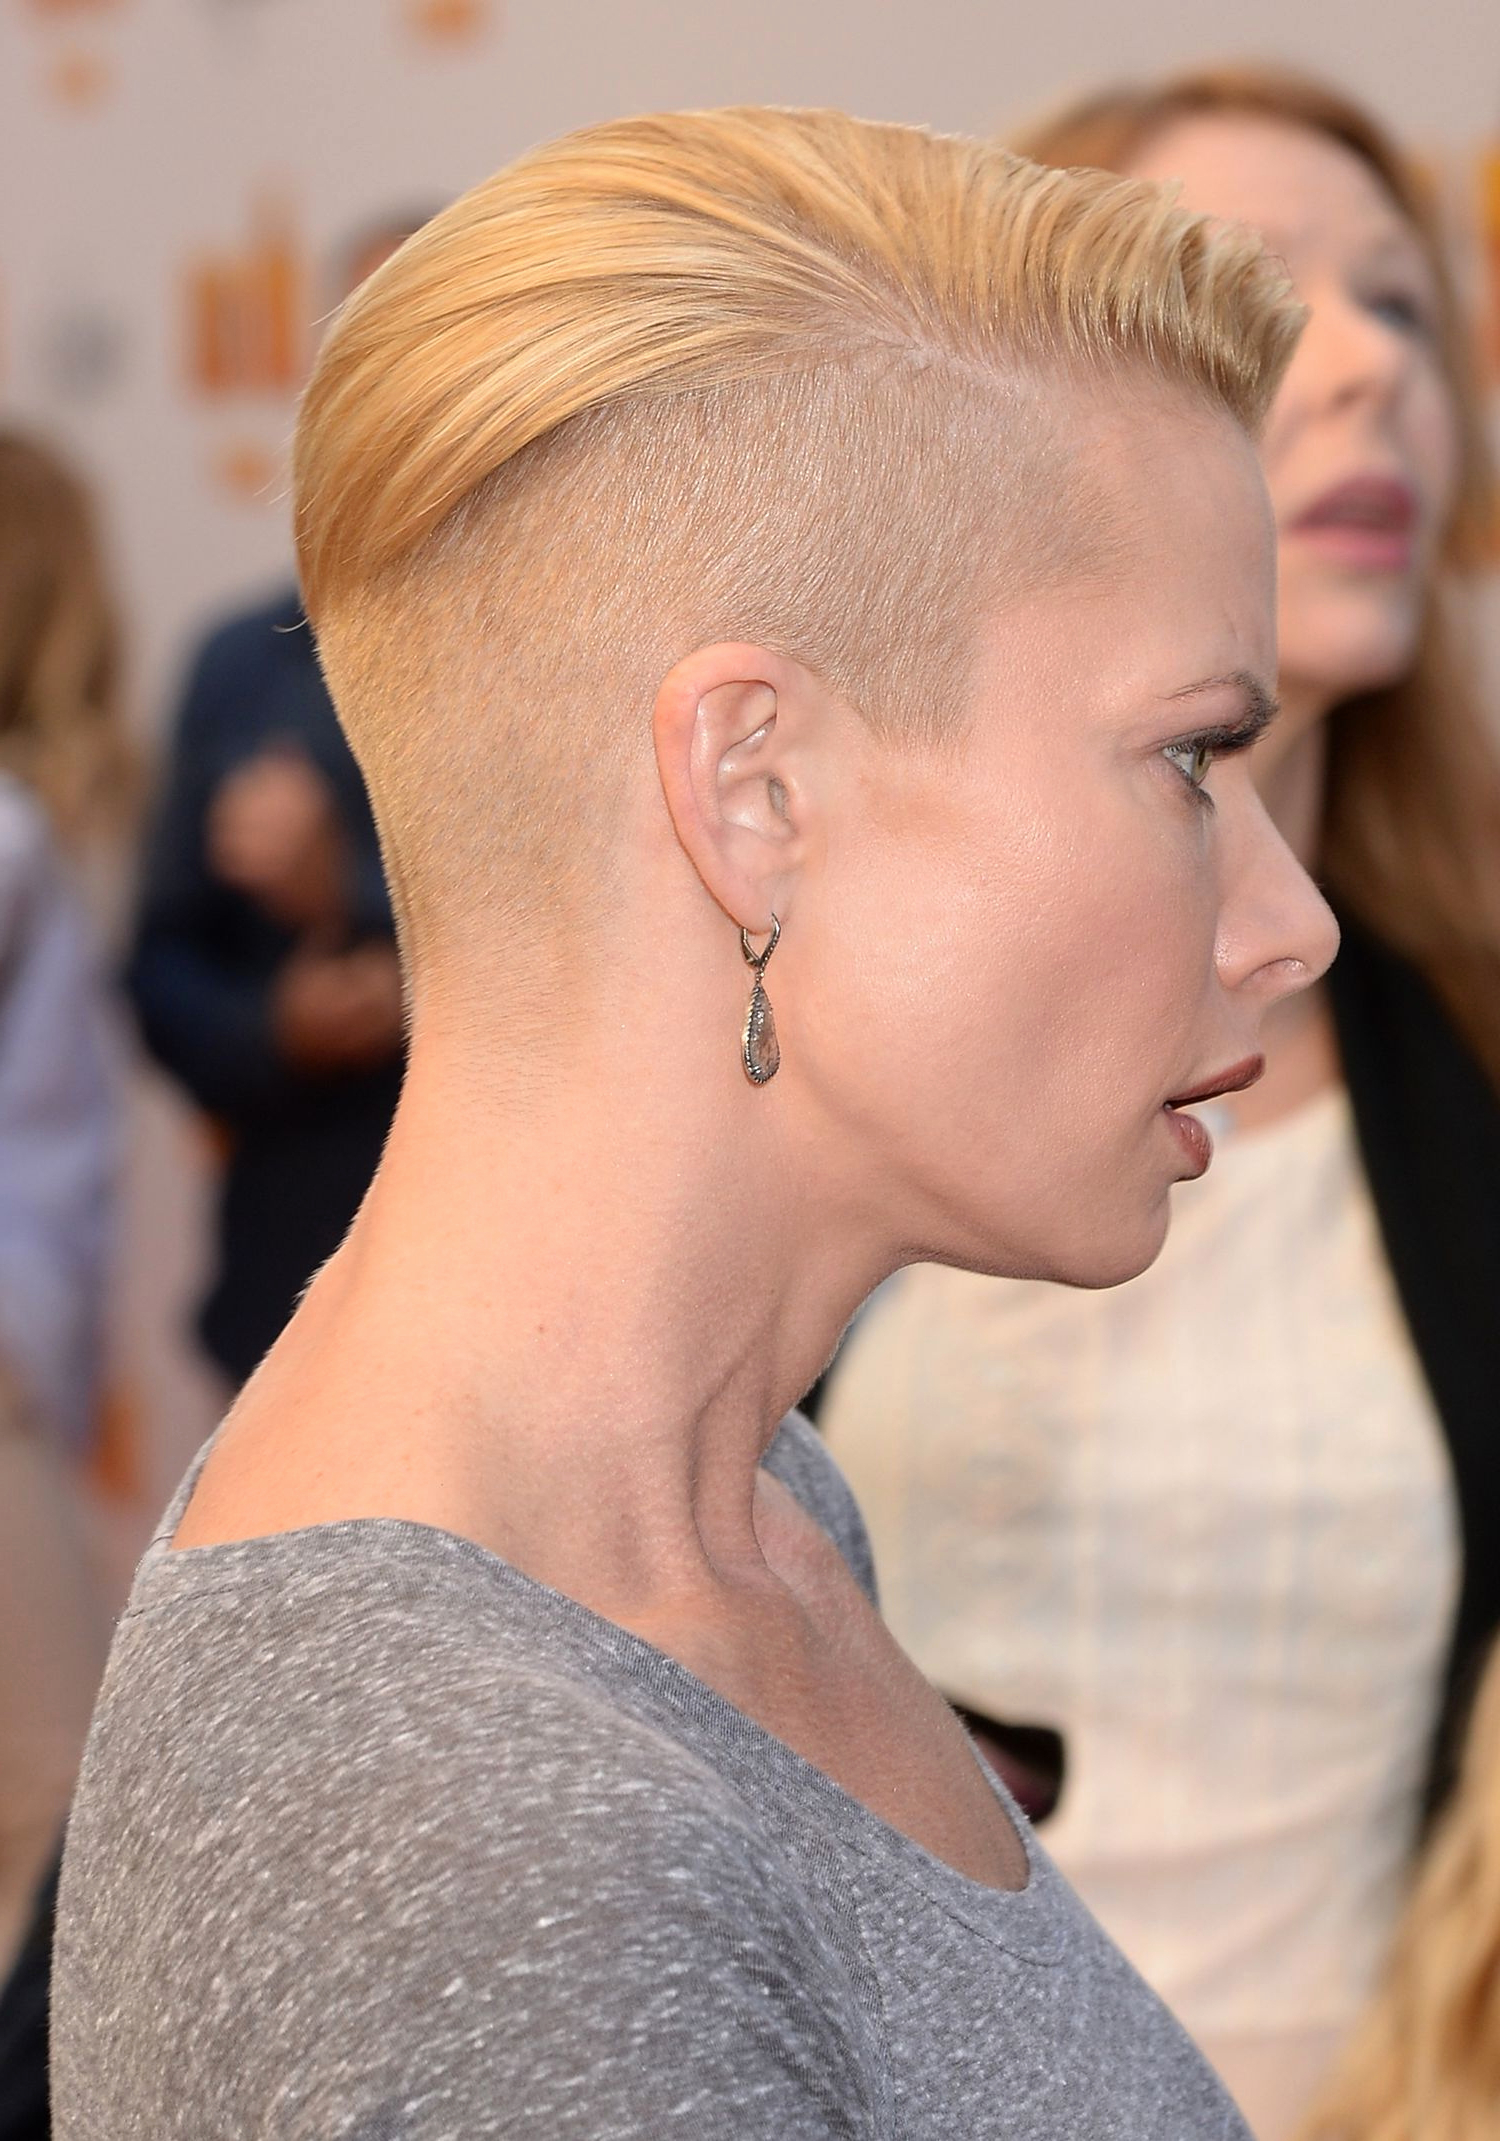 Short Hairstyles With Shaved Sides Short Hair Shaved Sides Hairstyle With Short Haircuts With Shaved Side (View 20 of 25)